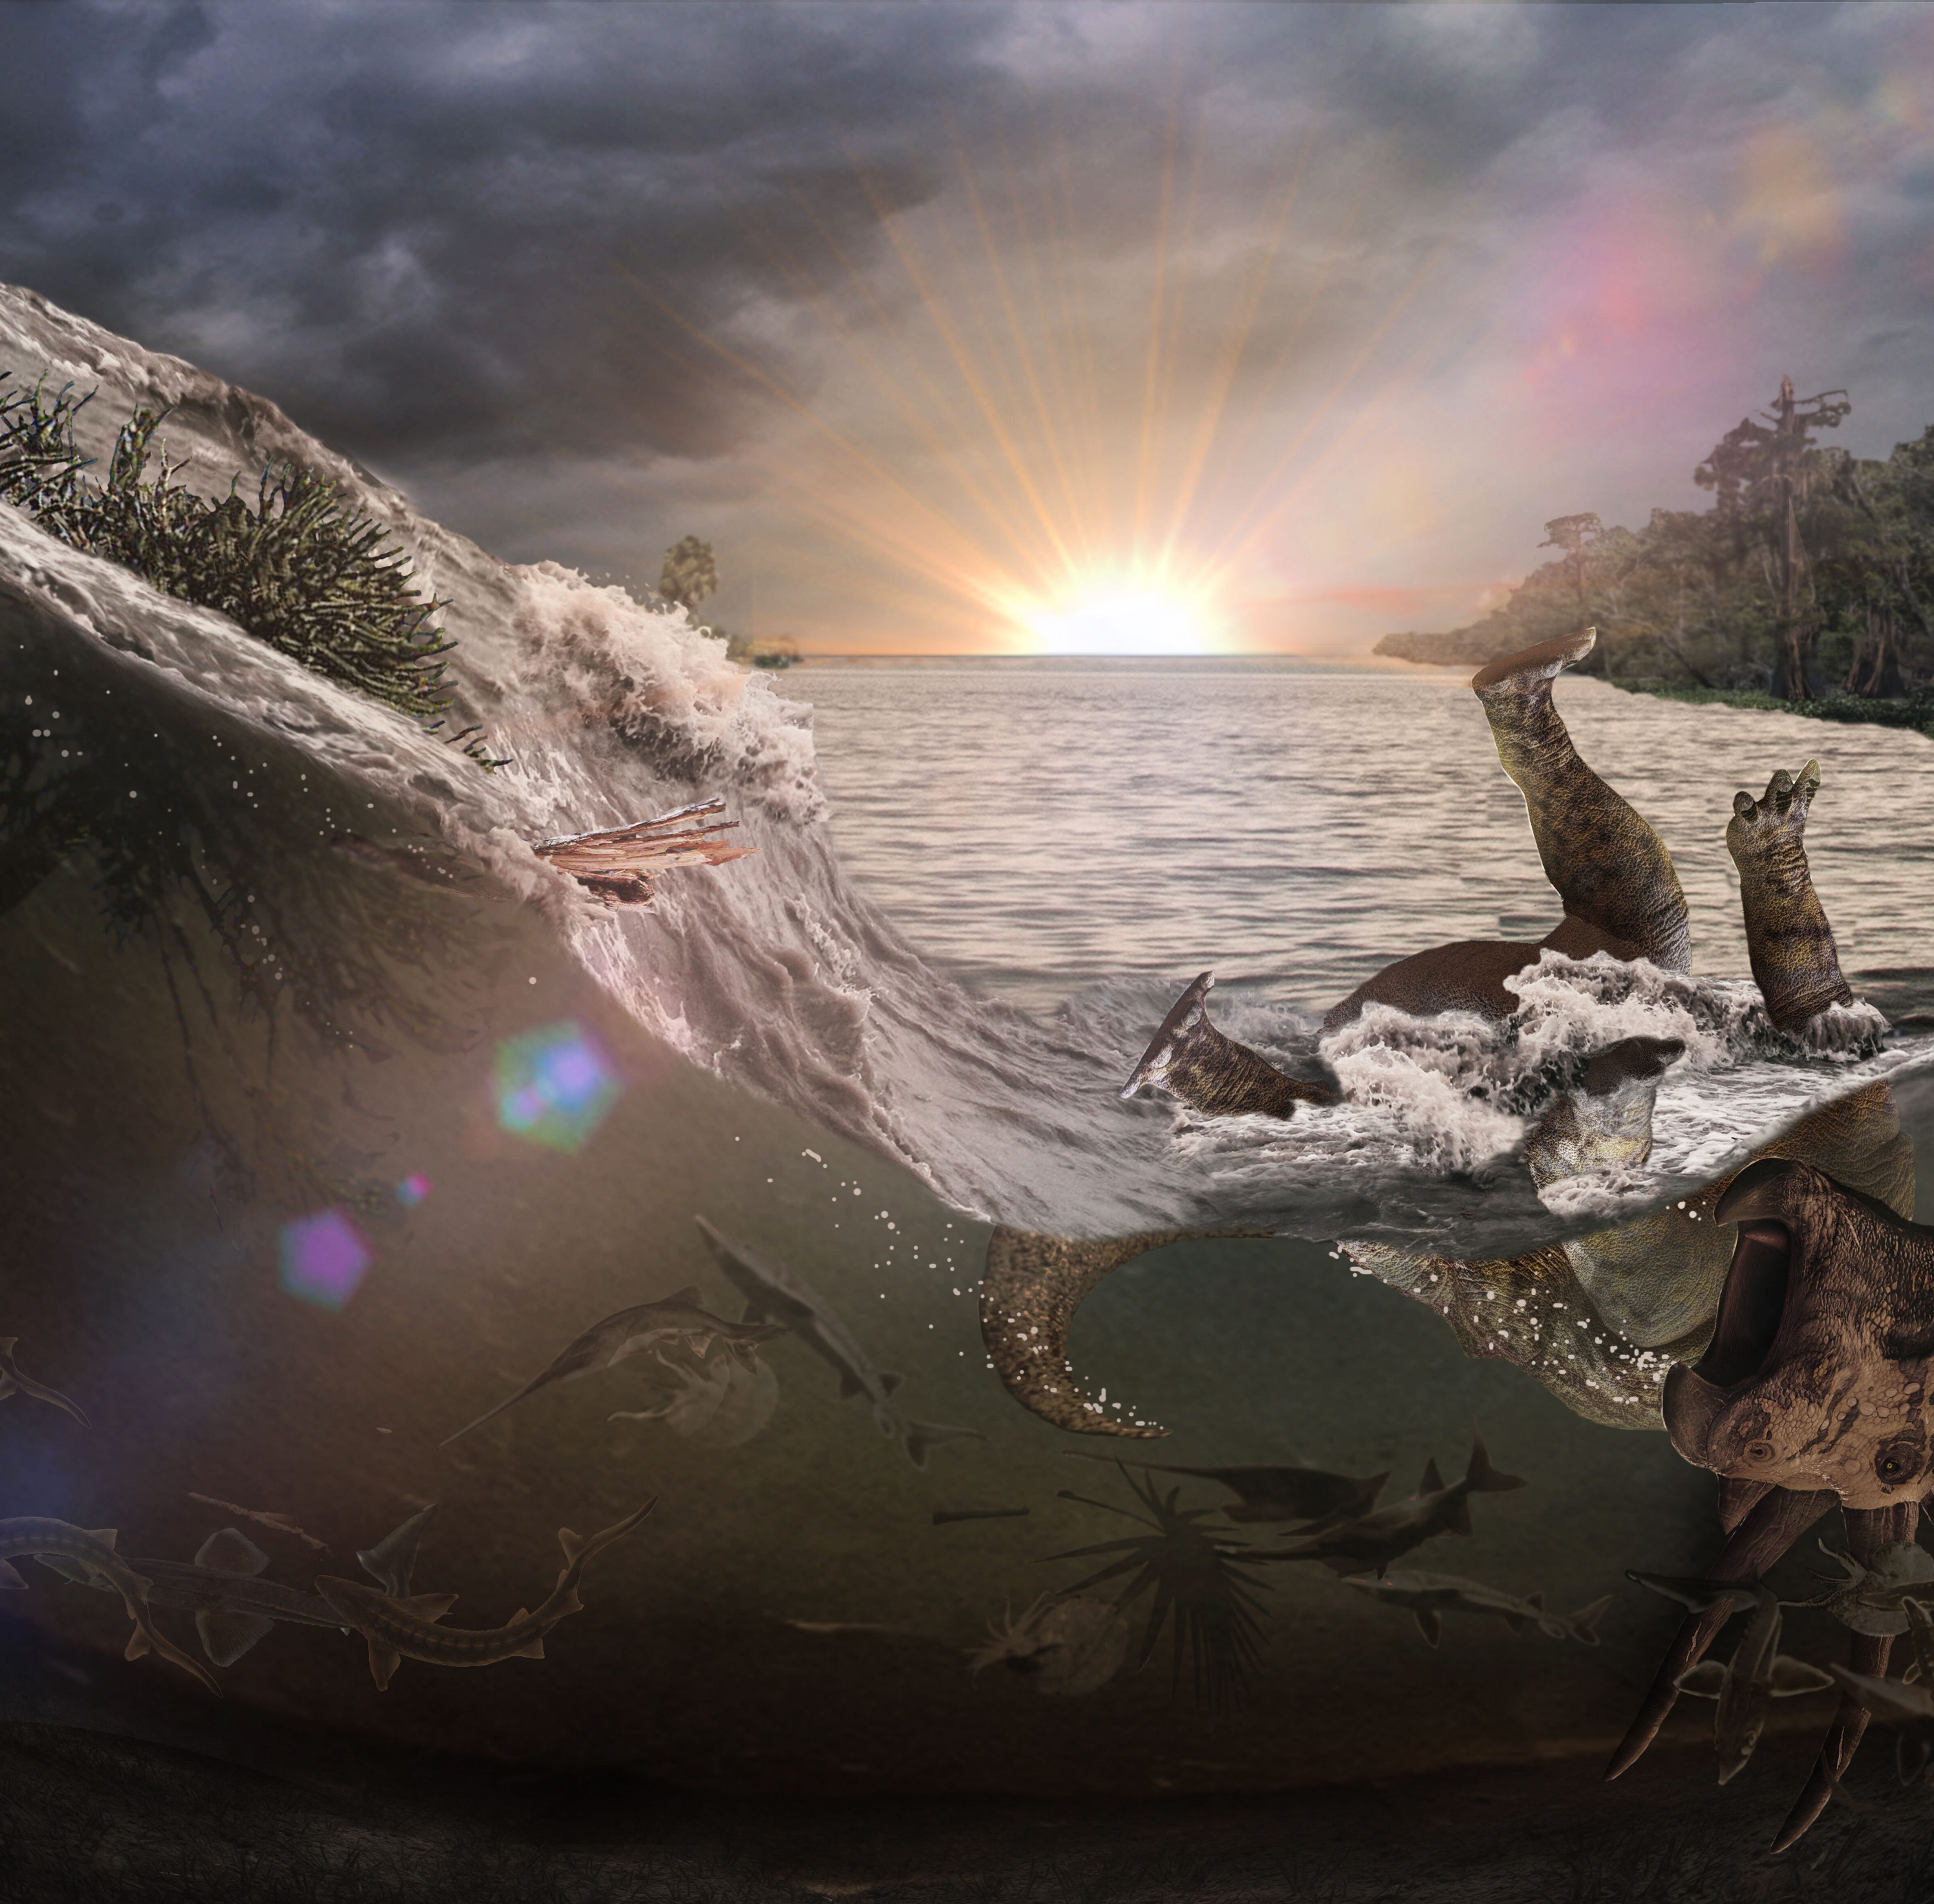 Fossils discovered from the day the dinosaurs died 66 million years ago, when an asteroid hit the Earth